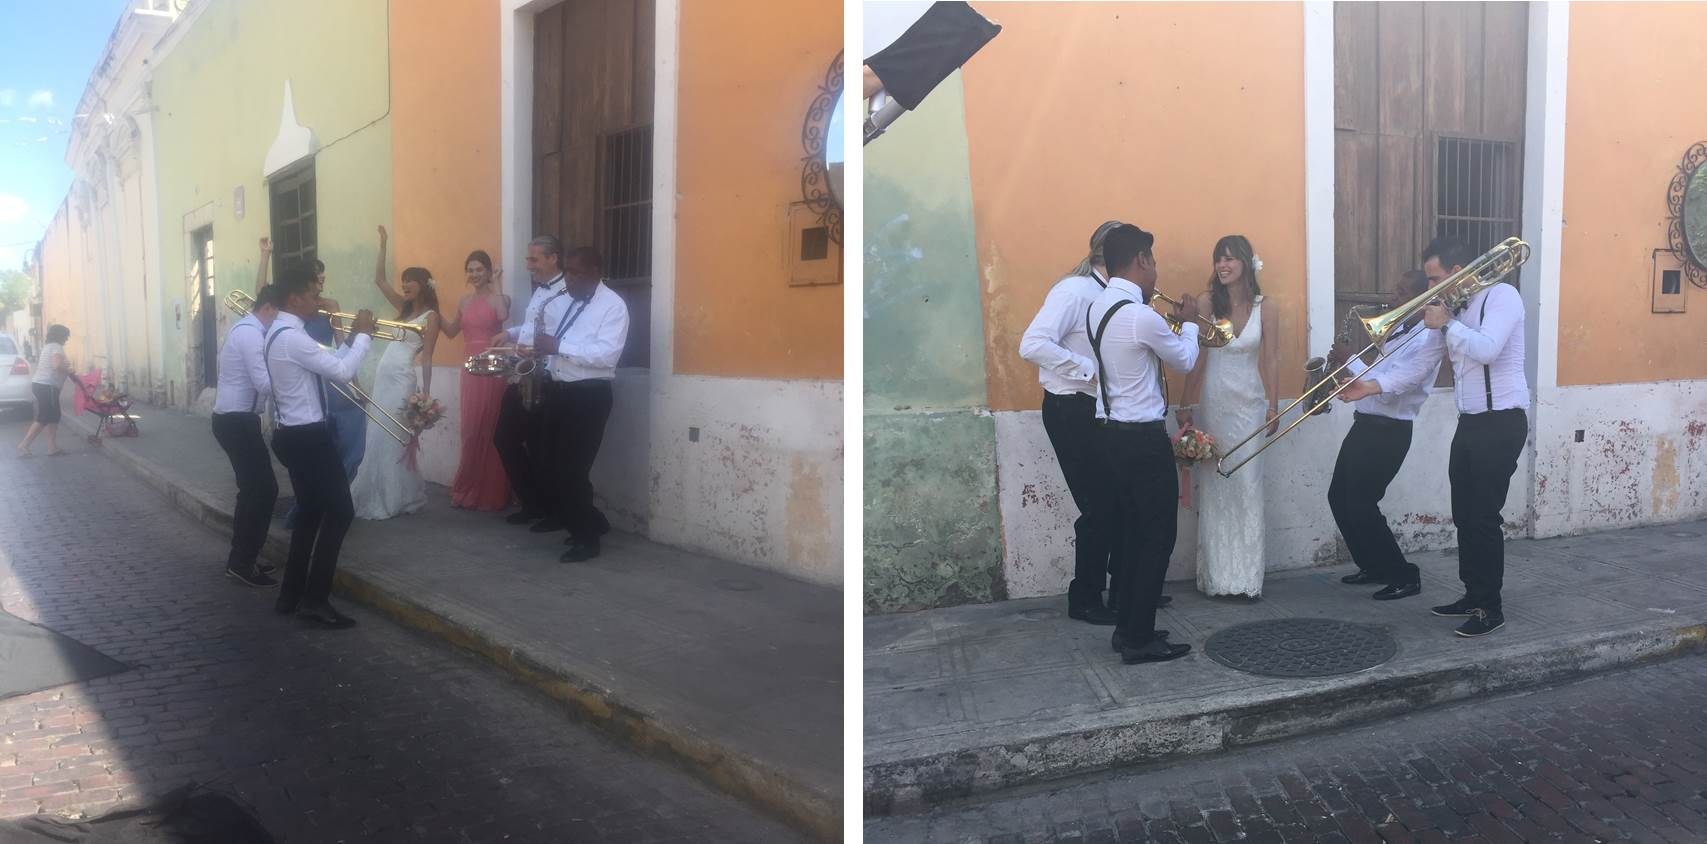 Making a scene on the streets of Merida during our Fall 2017 campaign shoot. See more on the David's Bridal blog - www.davidsbridal.com/blog.